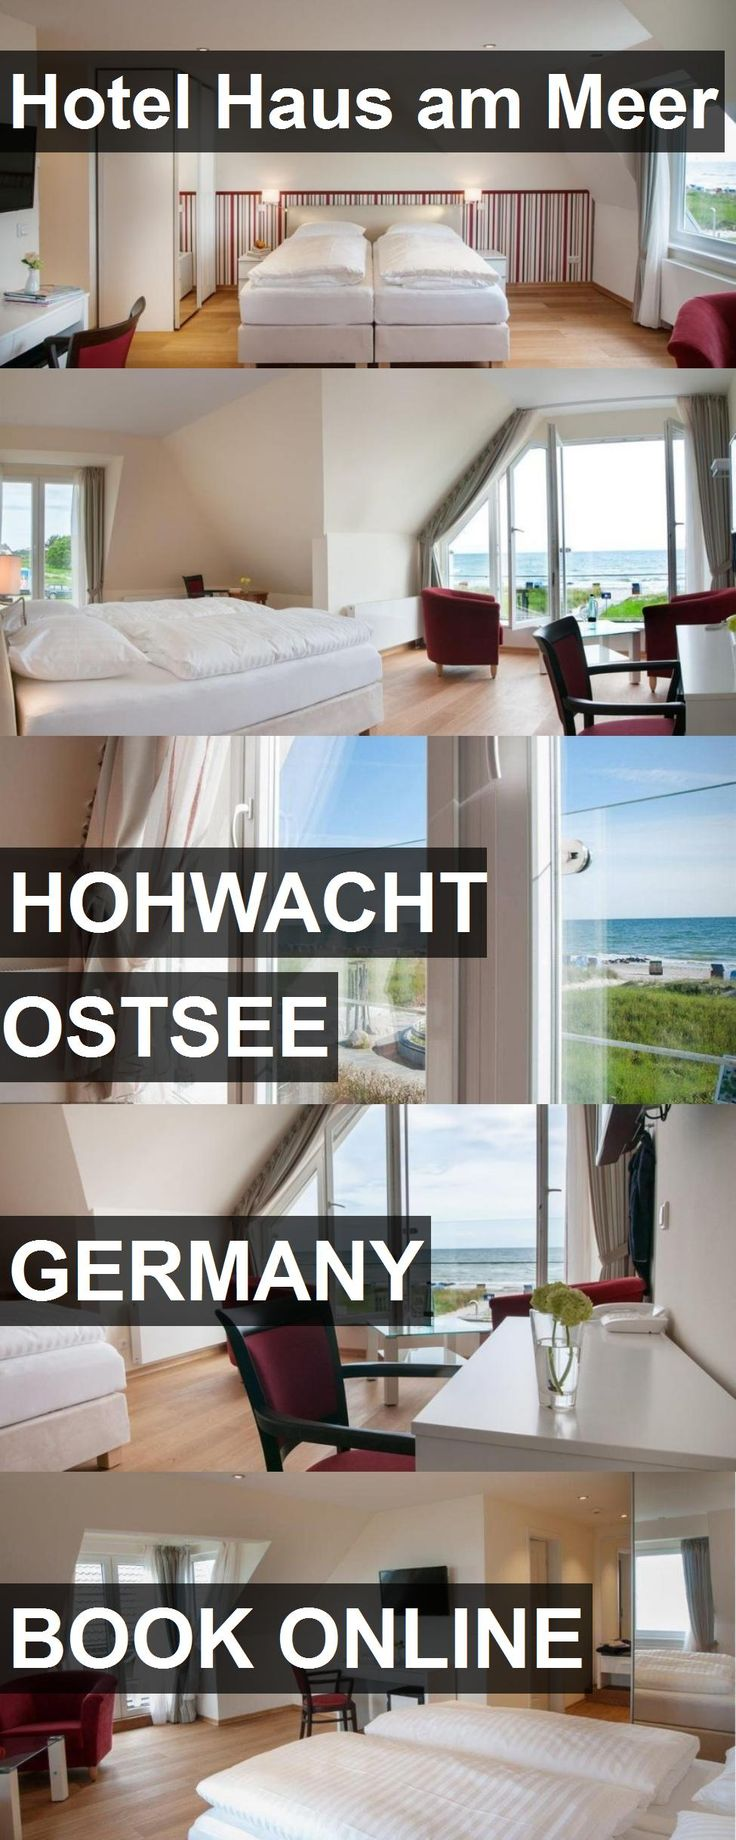 Hotel Hotel Haus am Meer in Hohwacht Ostsee, Germany. For more information, photos, reviews and best prices please follow the link. #Germany #HohwachtOstsee #HotelHausamMeer #hotel #travel #vacation